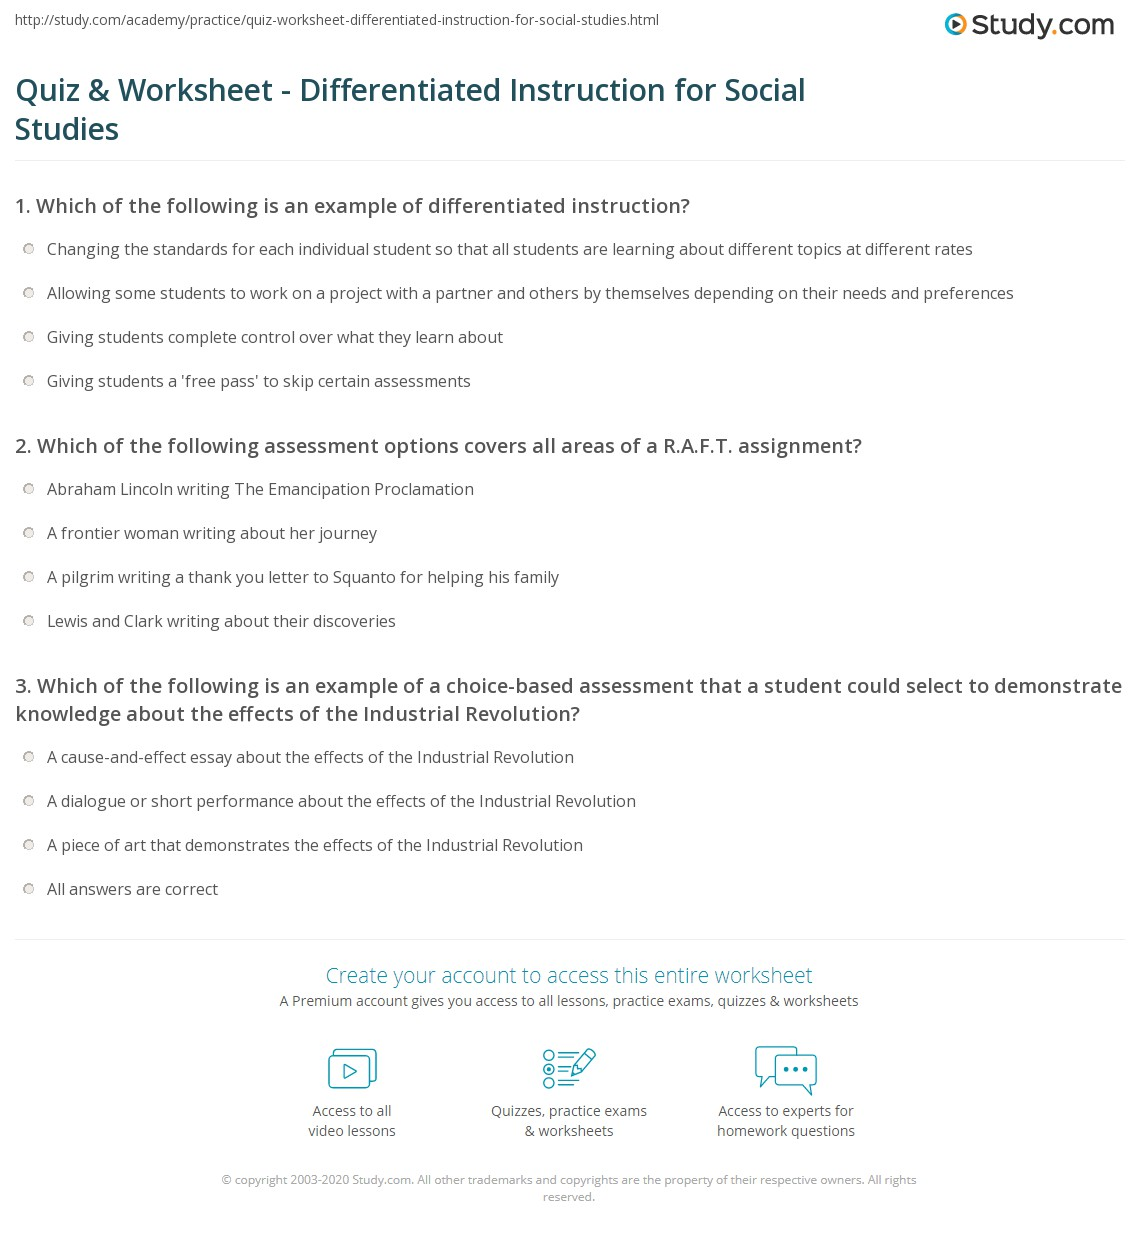 Quiz Worksheet Differentiated Instruction For Social Studies